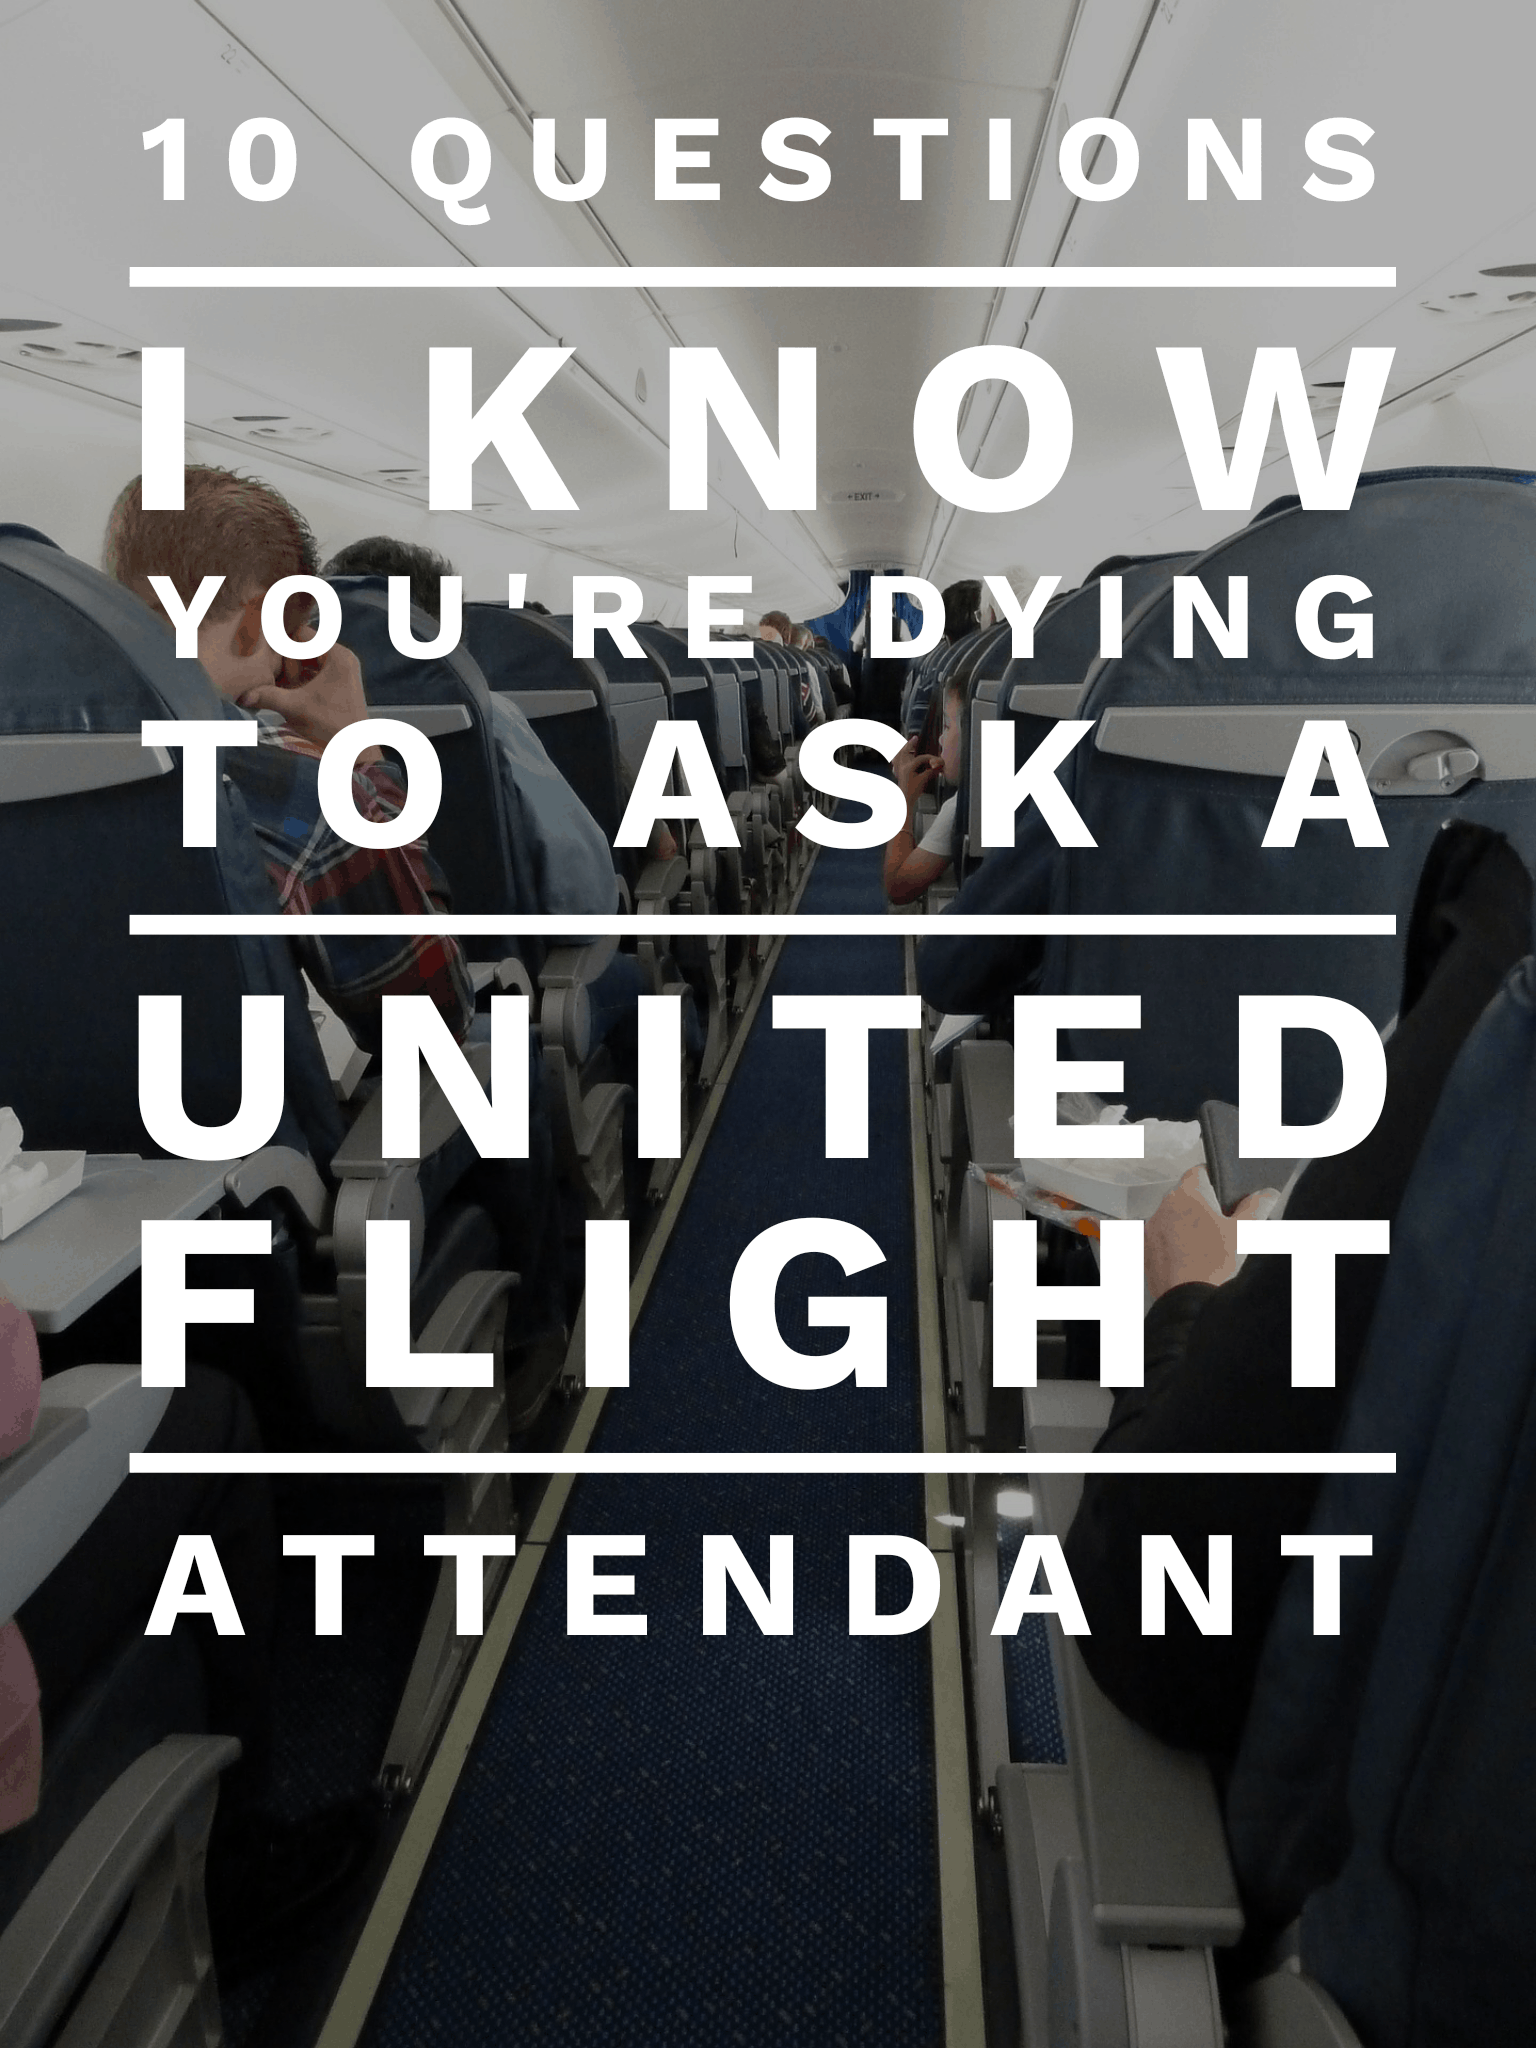 10 questions ask united flight attendant